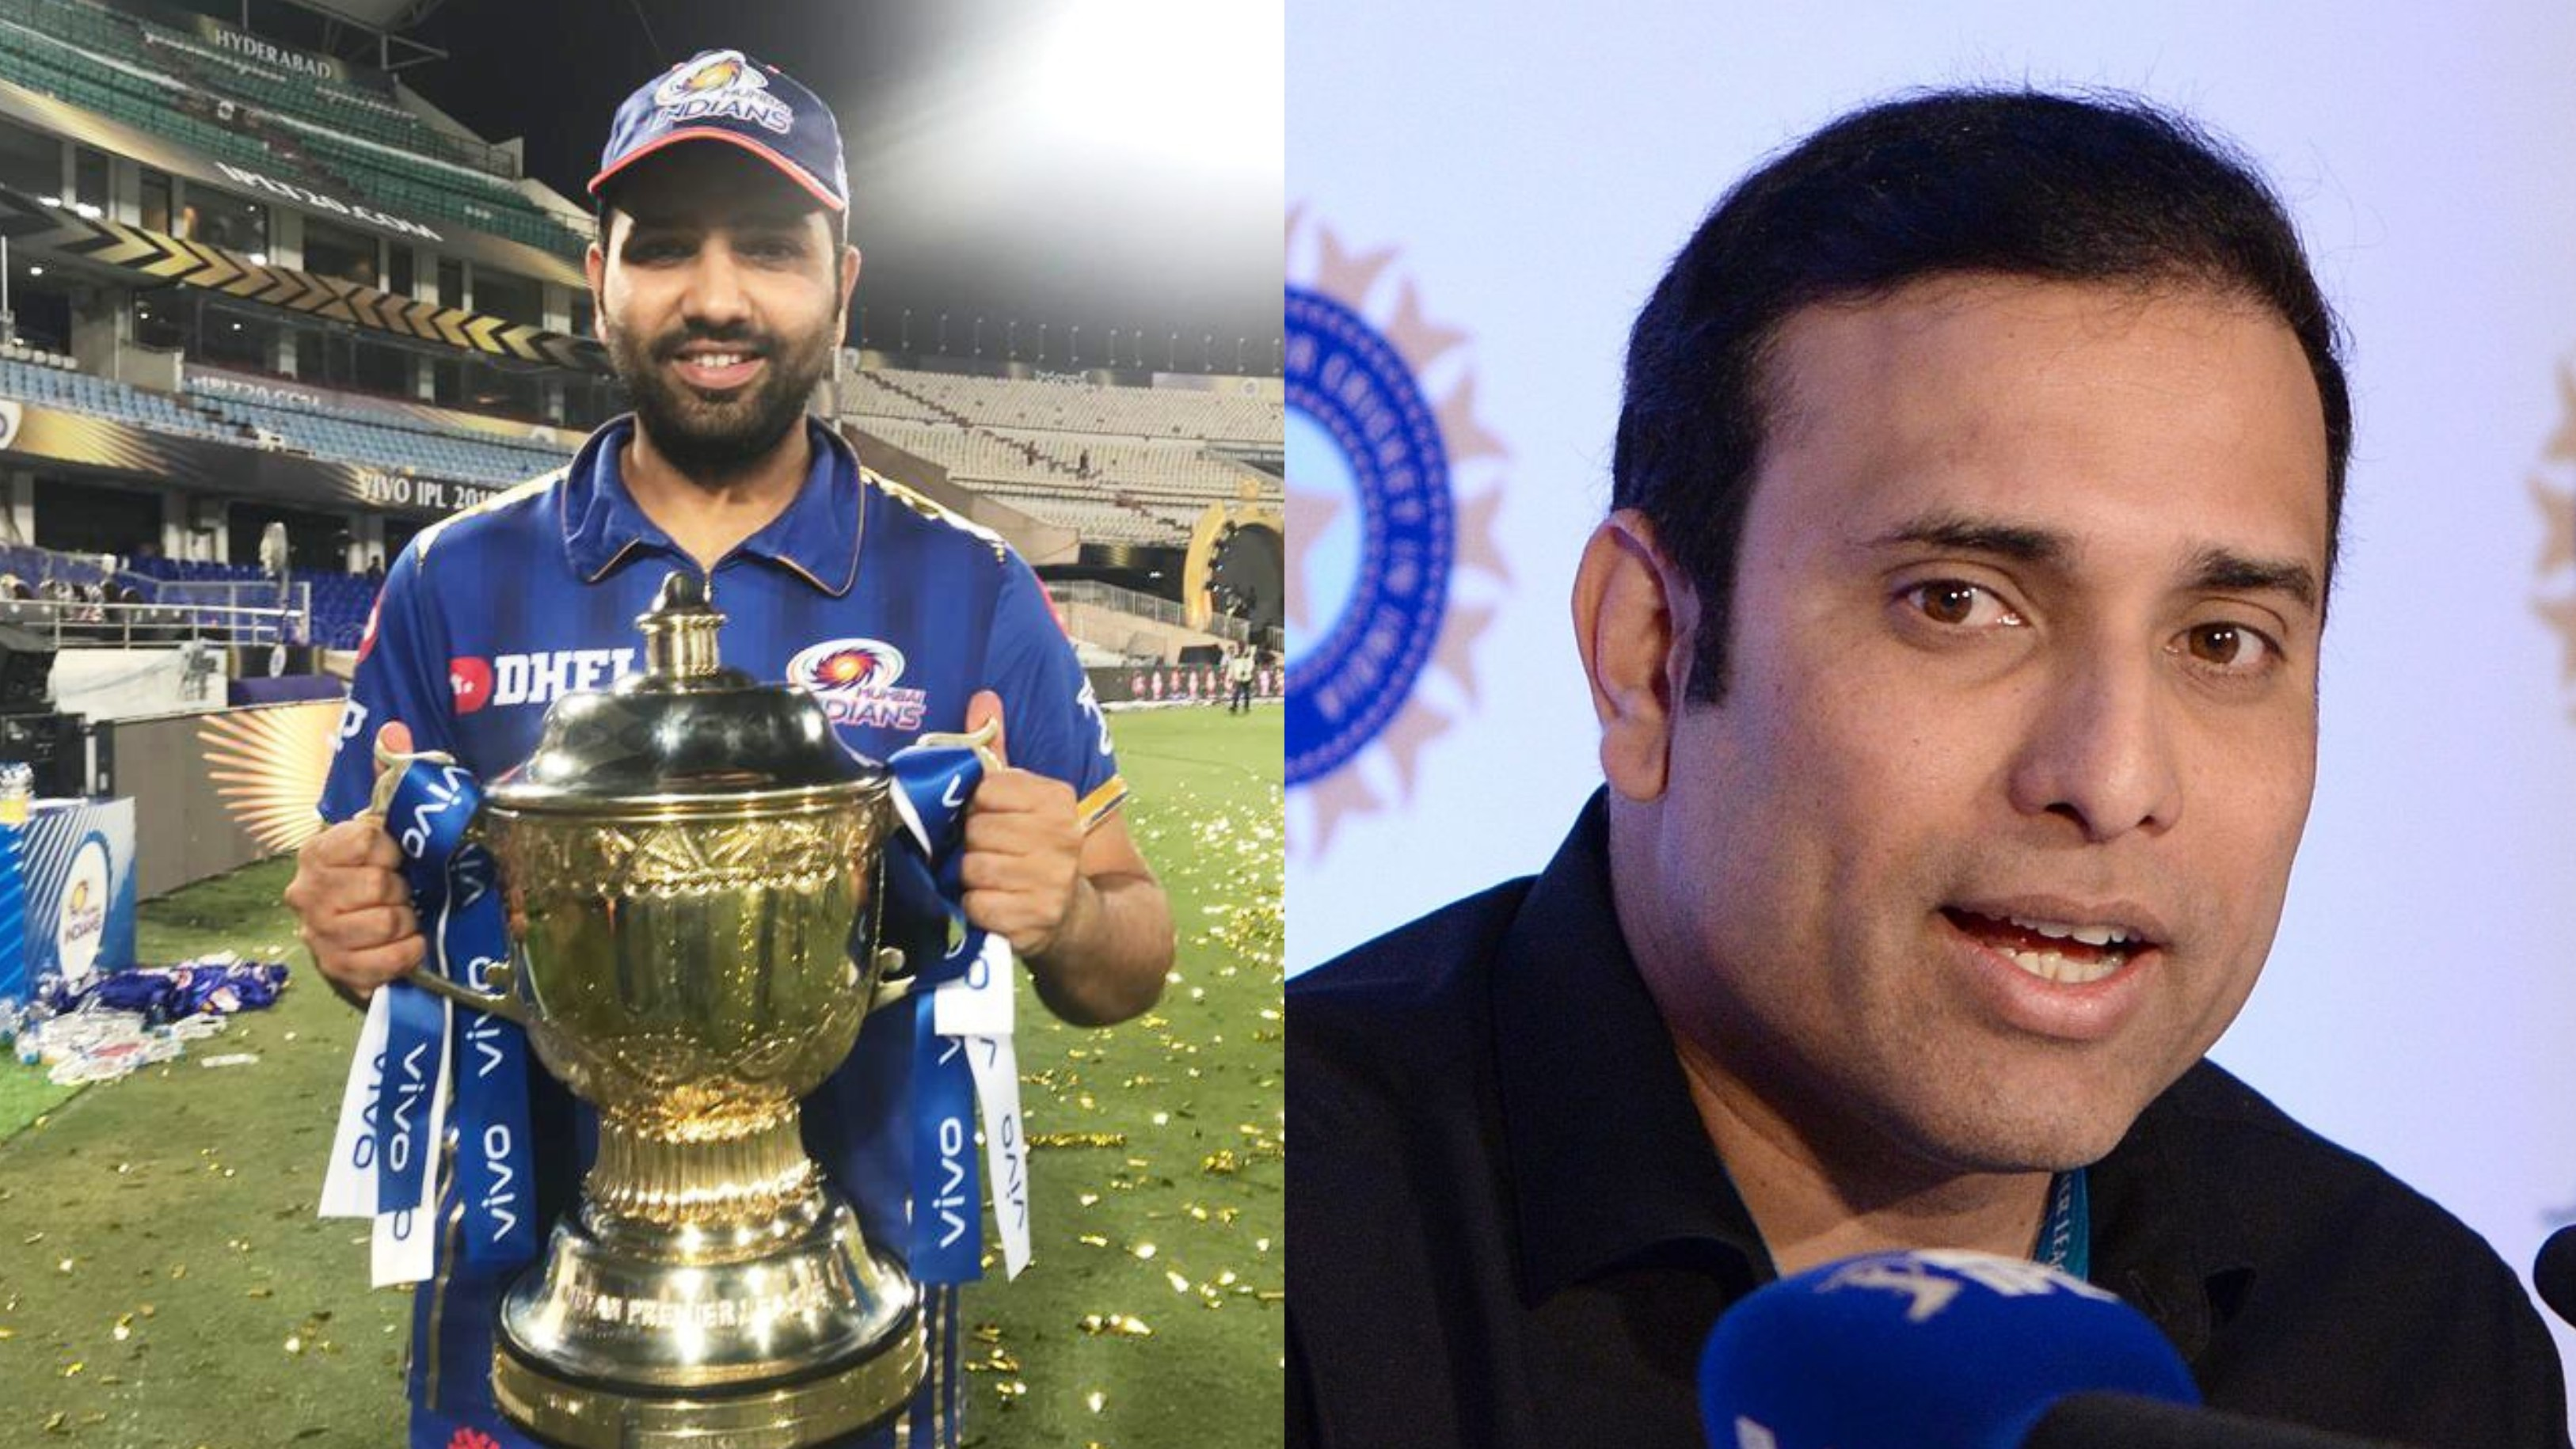 VVS Laxman says Rohit Sharma's ability to handle pressure makes him IPL's most successful captain